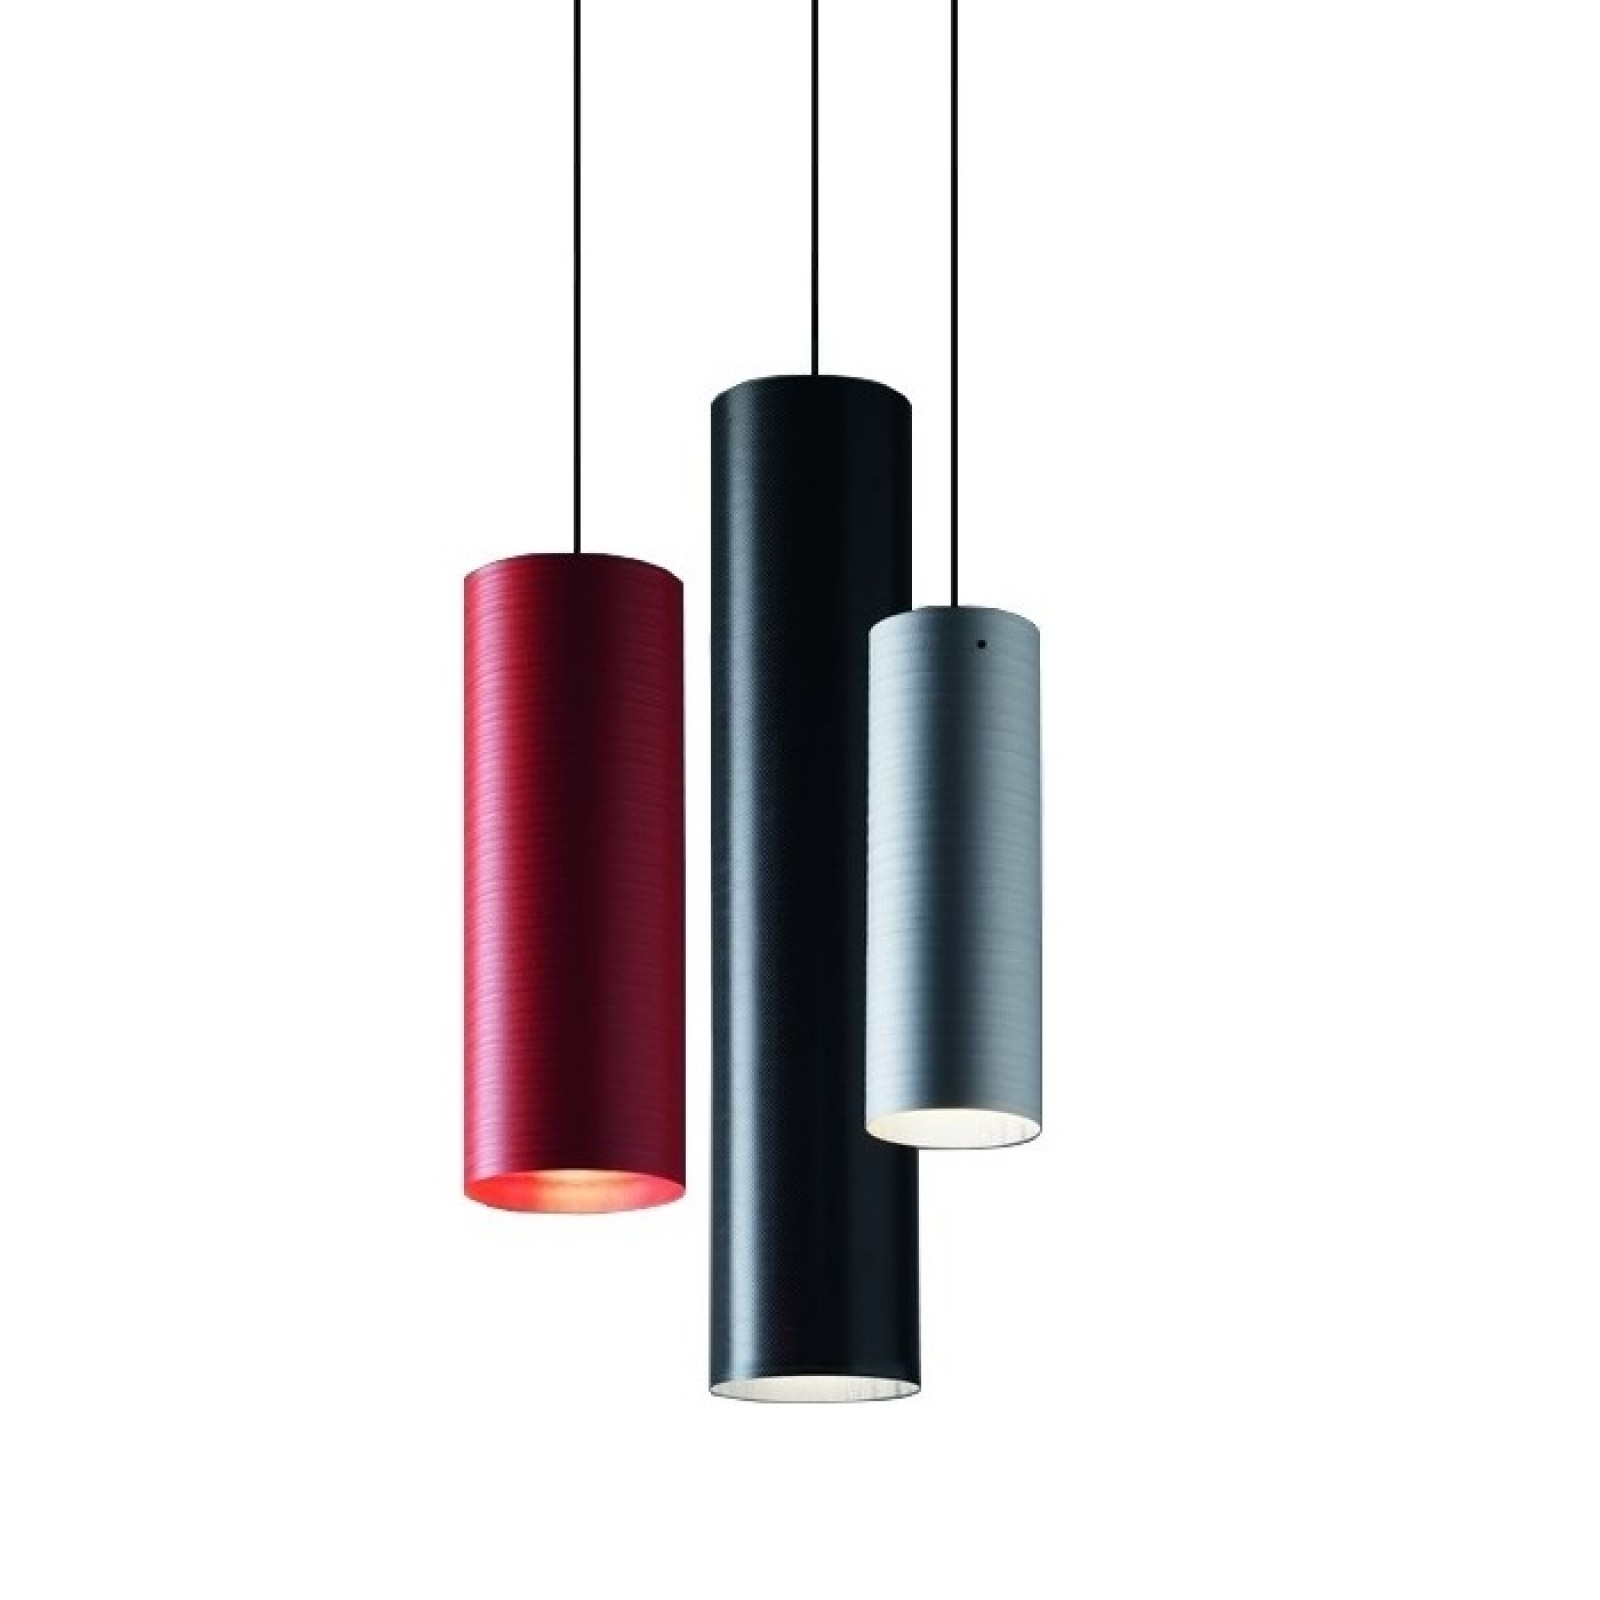 Tube Suspended Ceiling Lamp - Karboxx